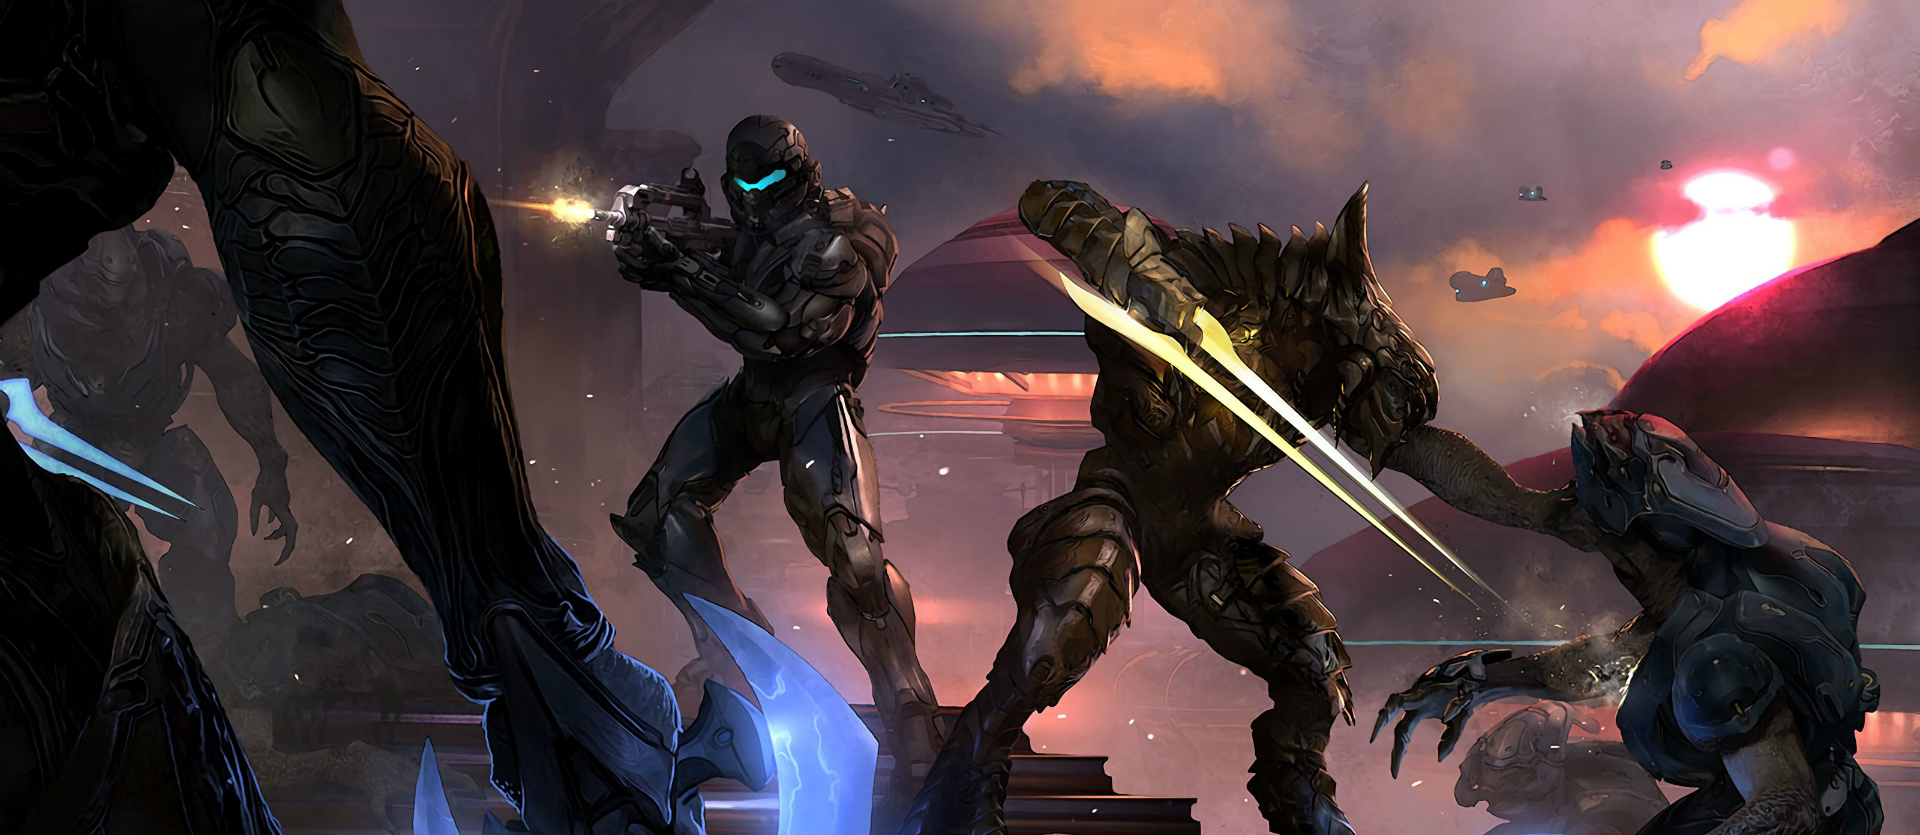 BATTLE OF SUNAION - Fireteam Osiris assaulting the last Covenant remnant stronghold of Sunaion with Swords of Sanghelios leader Thel 'Vadam, October 27th, 2558.